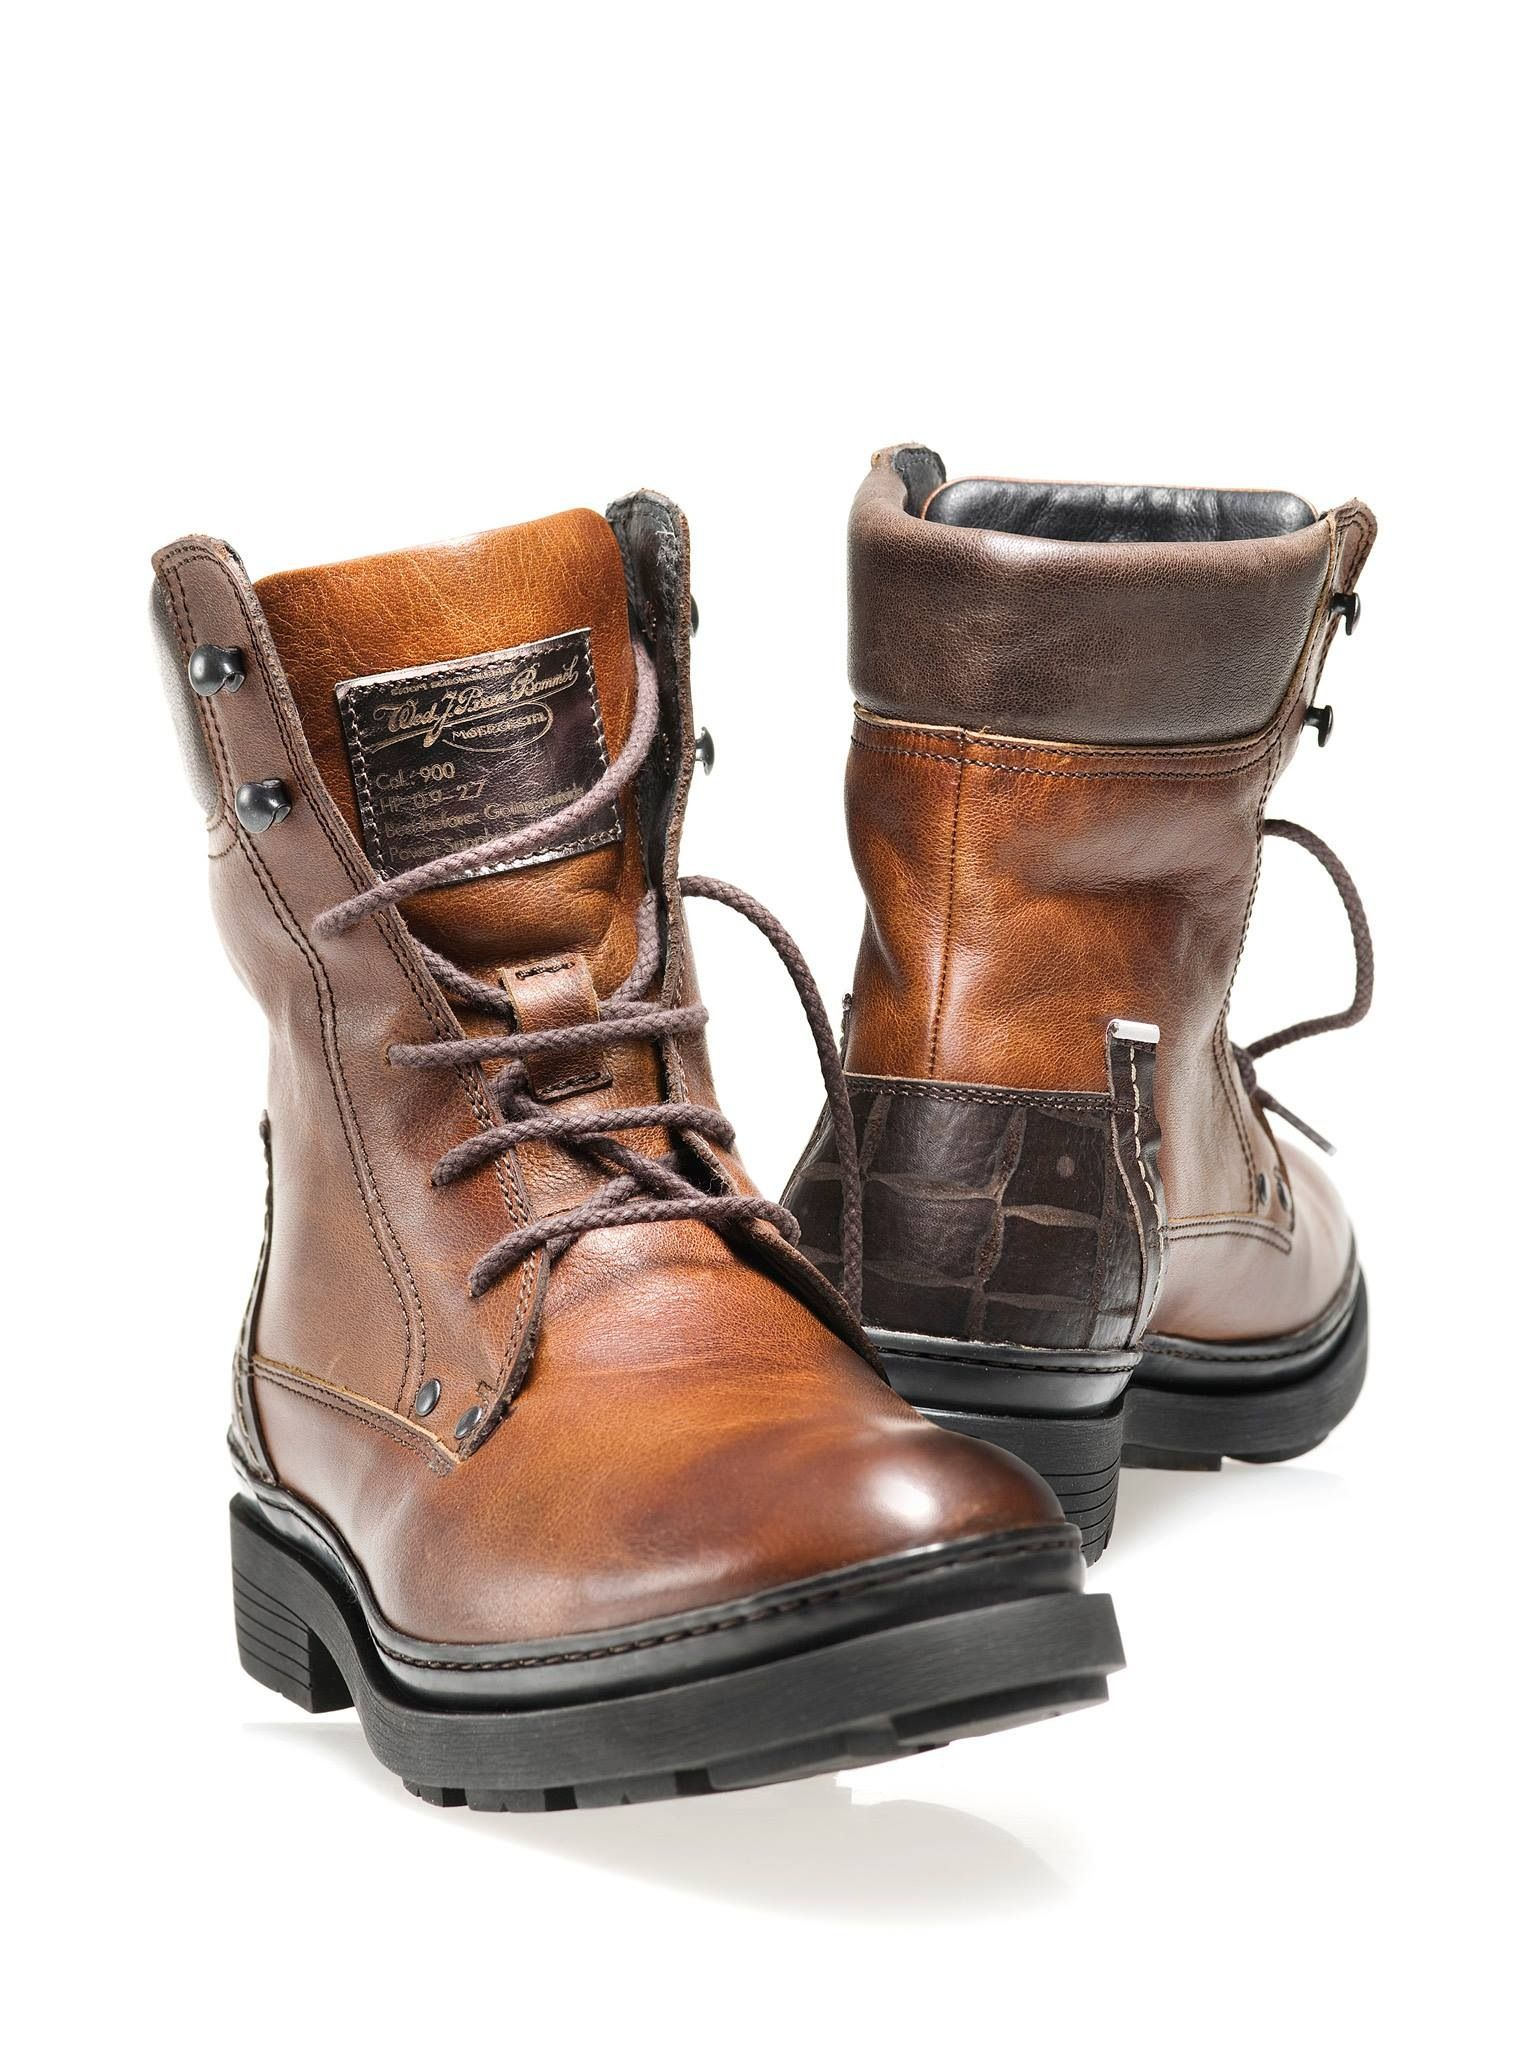 best price release info on arrives New Floris van Bommel collection fall 2013 | My Shoes (that ...